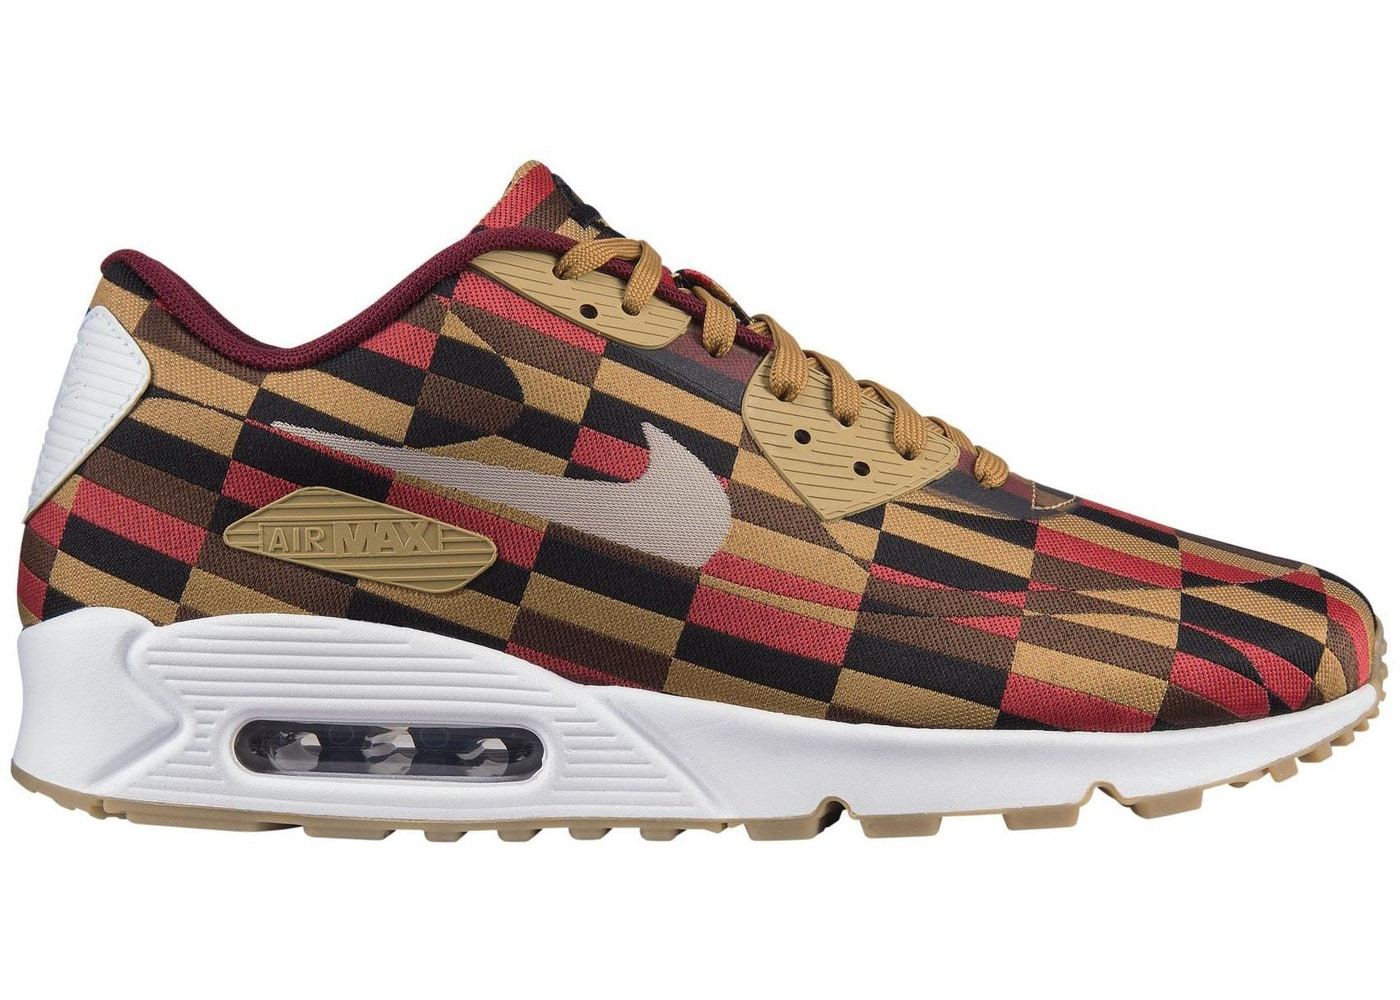 release date 61ccd fc904 Air Max 90 London Underground